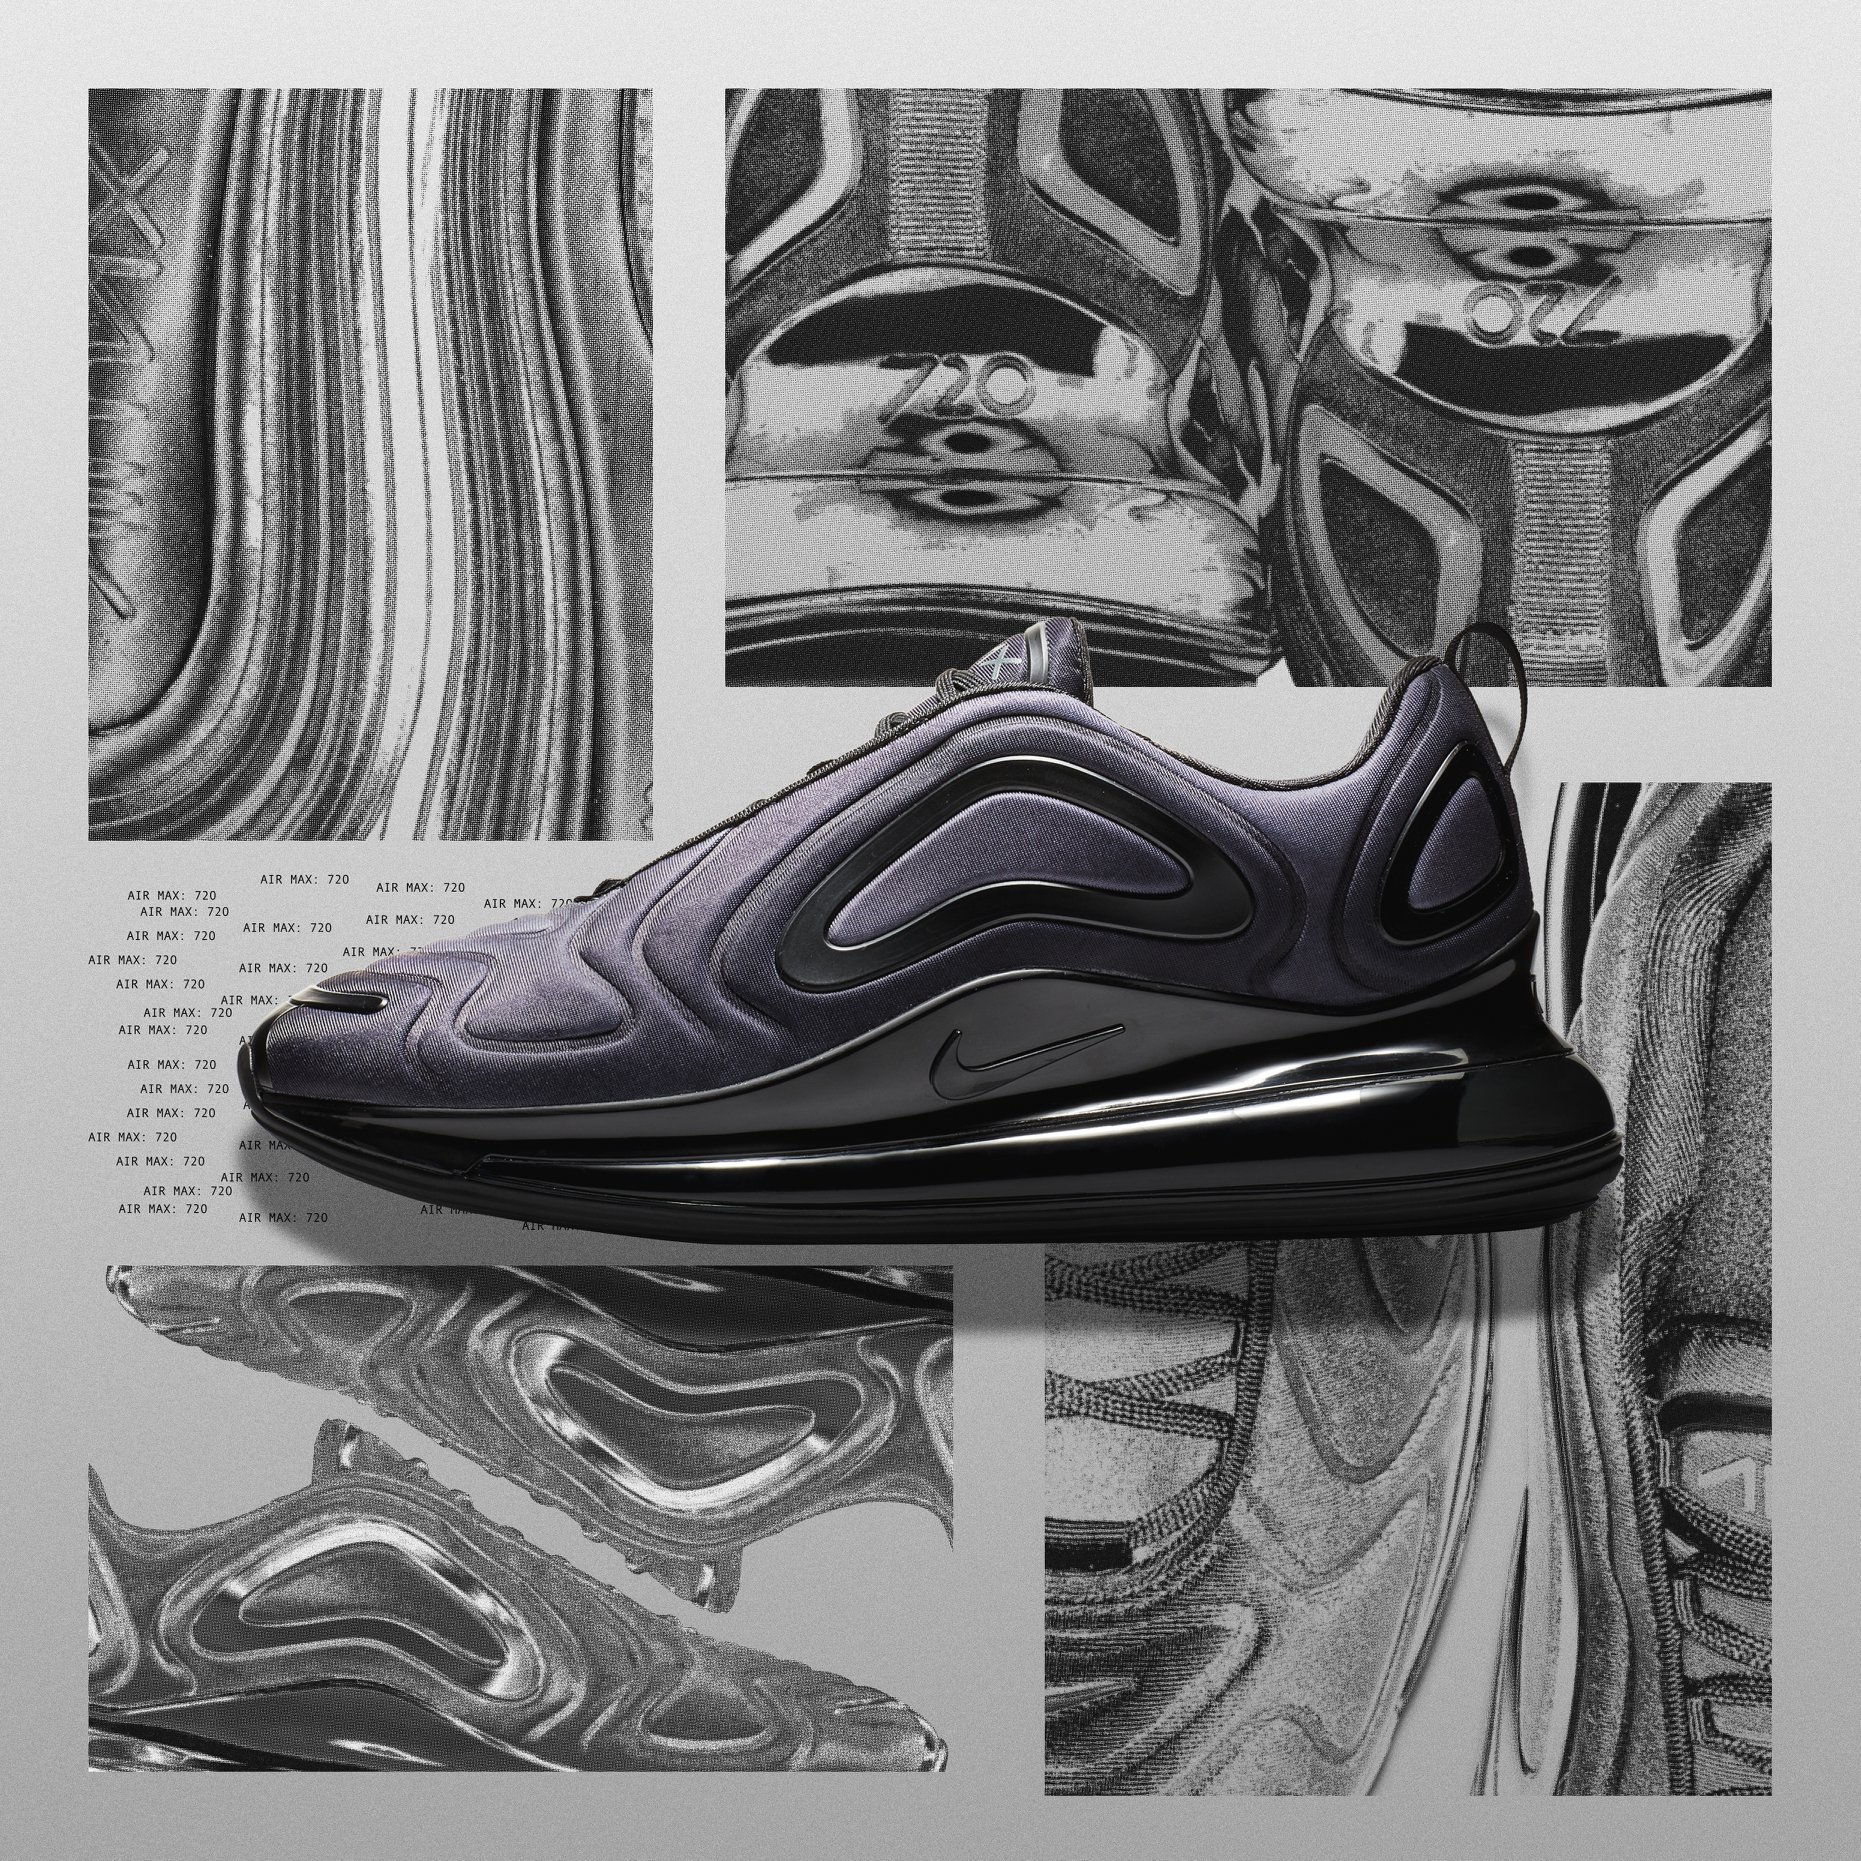 How To Get The New Air Max 720 – aahh